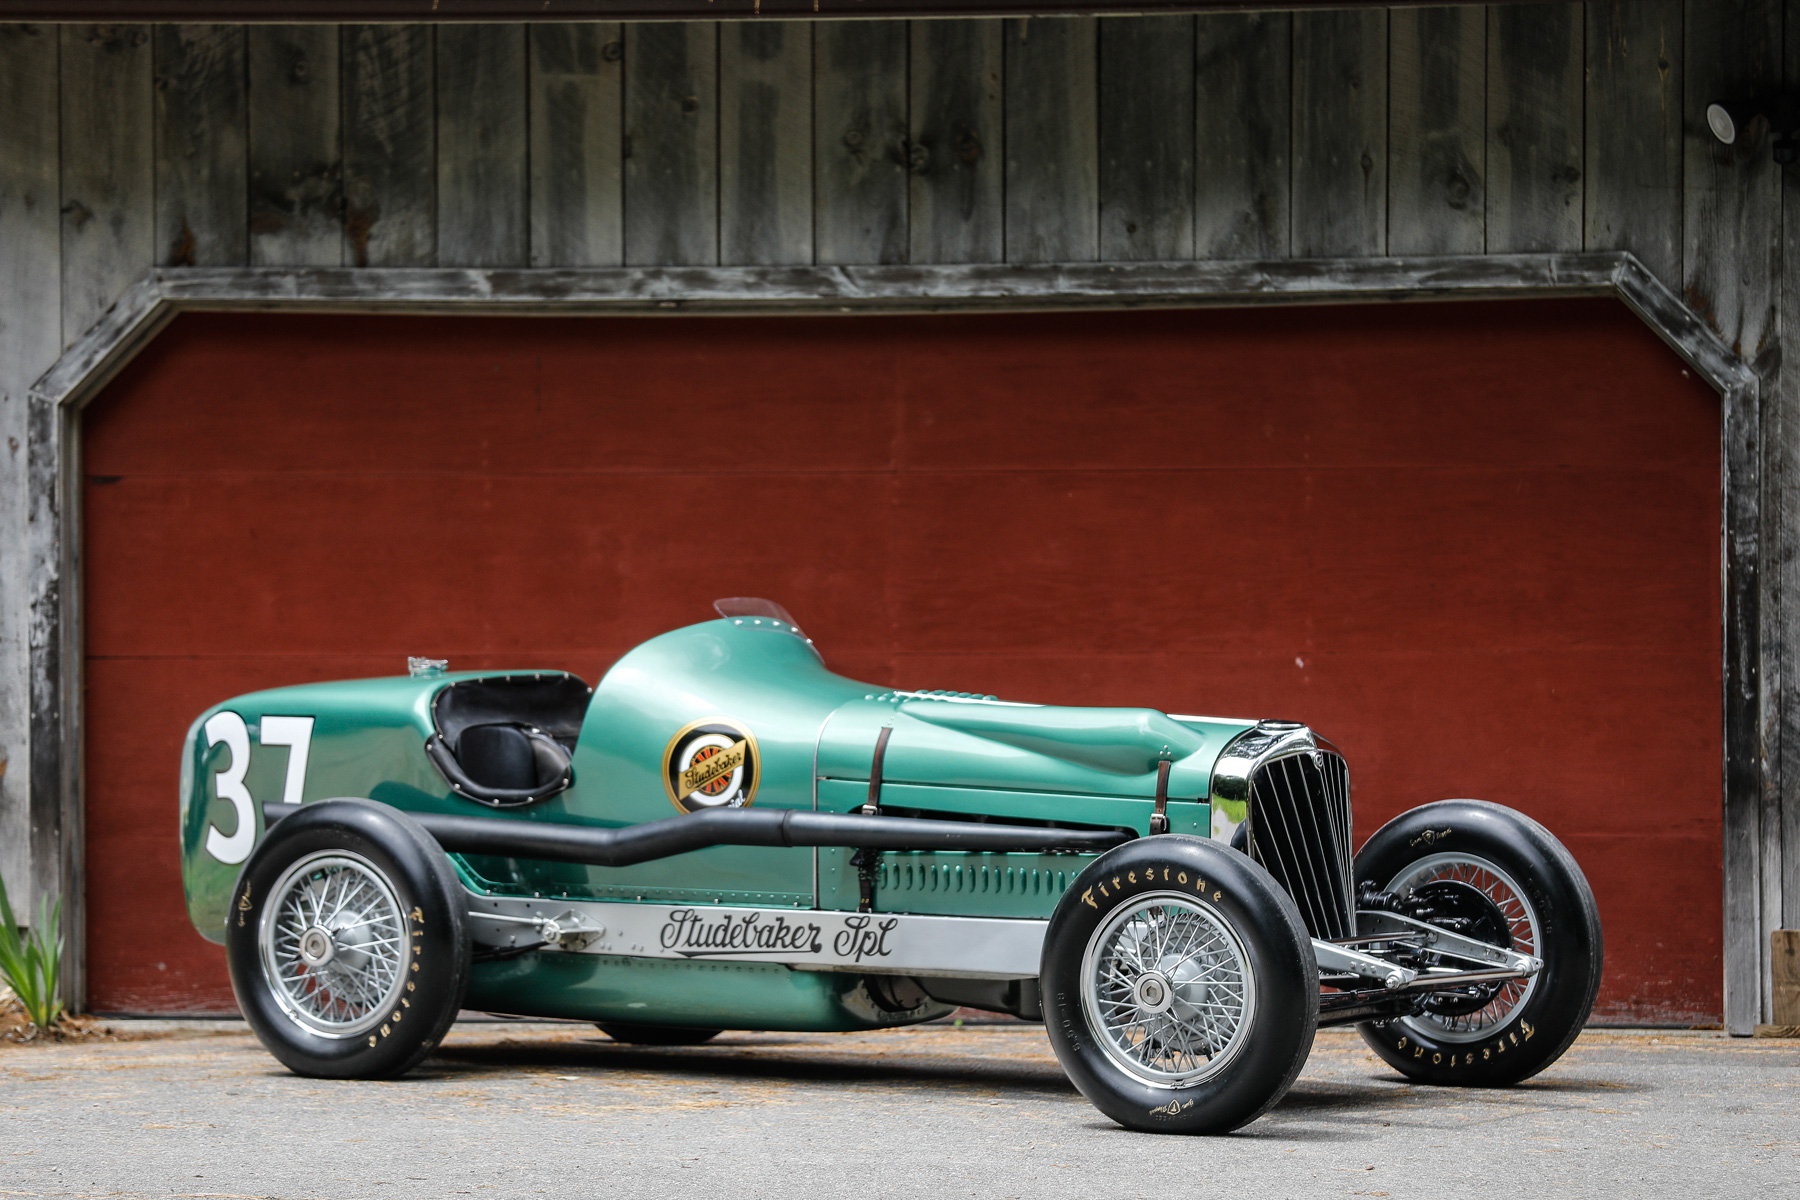 1931 Studebaker Special Indy Car